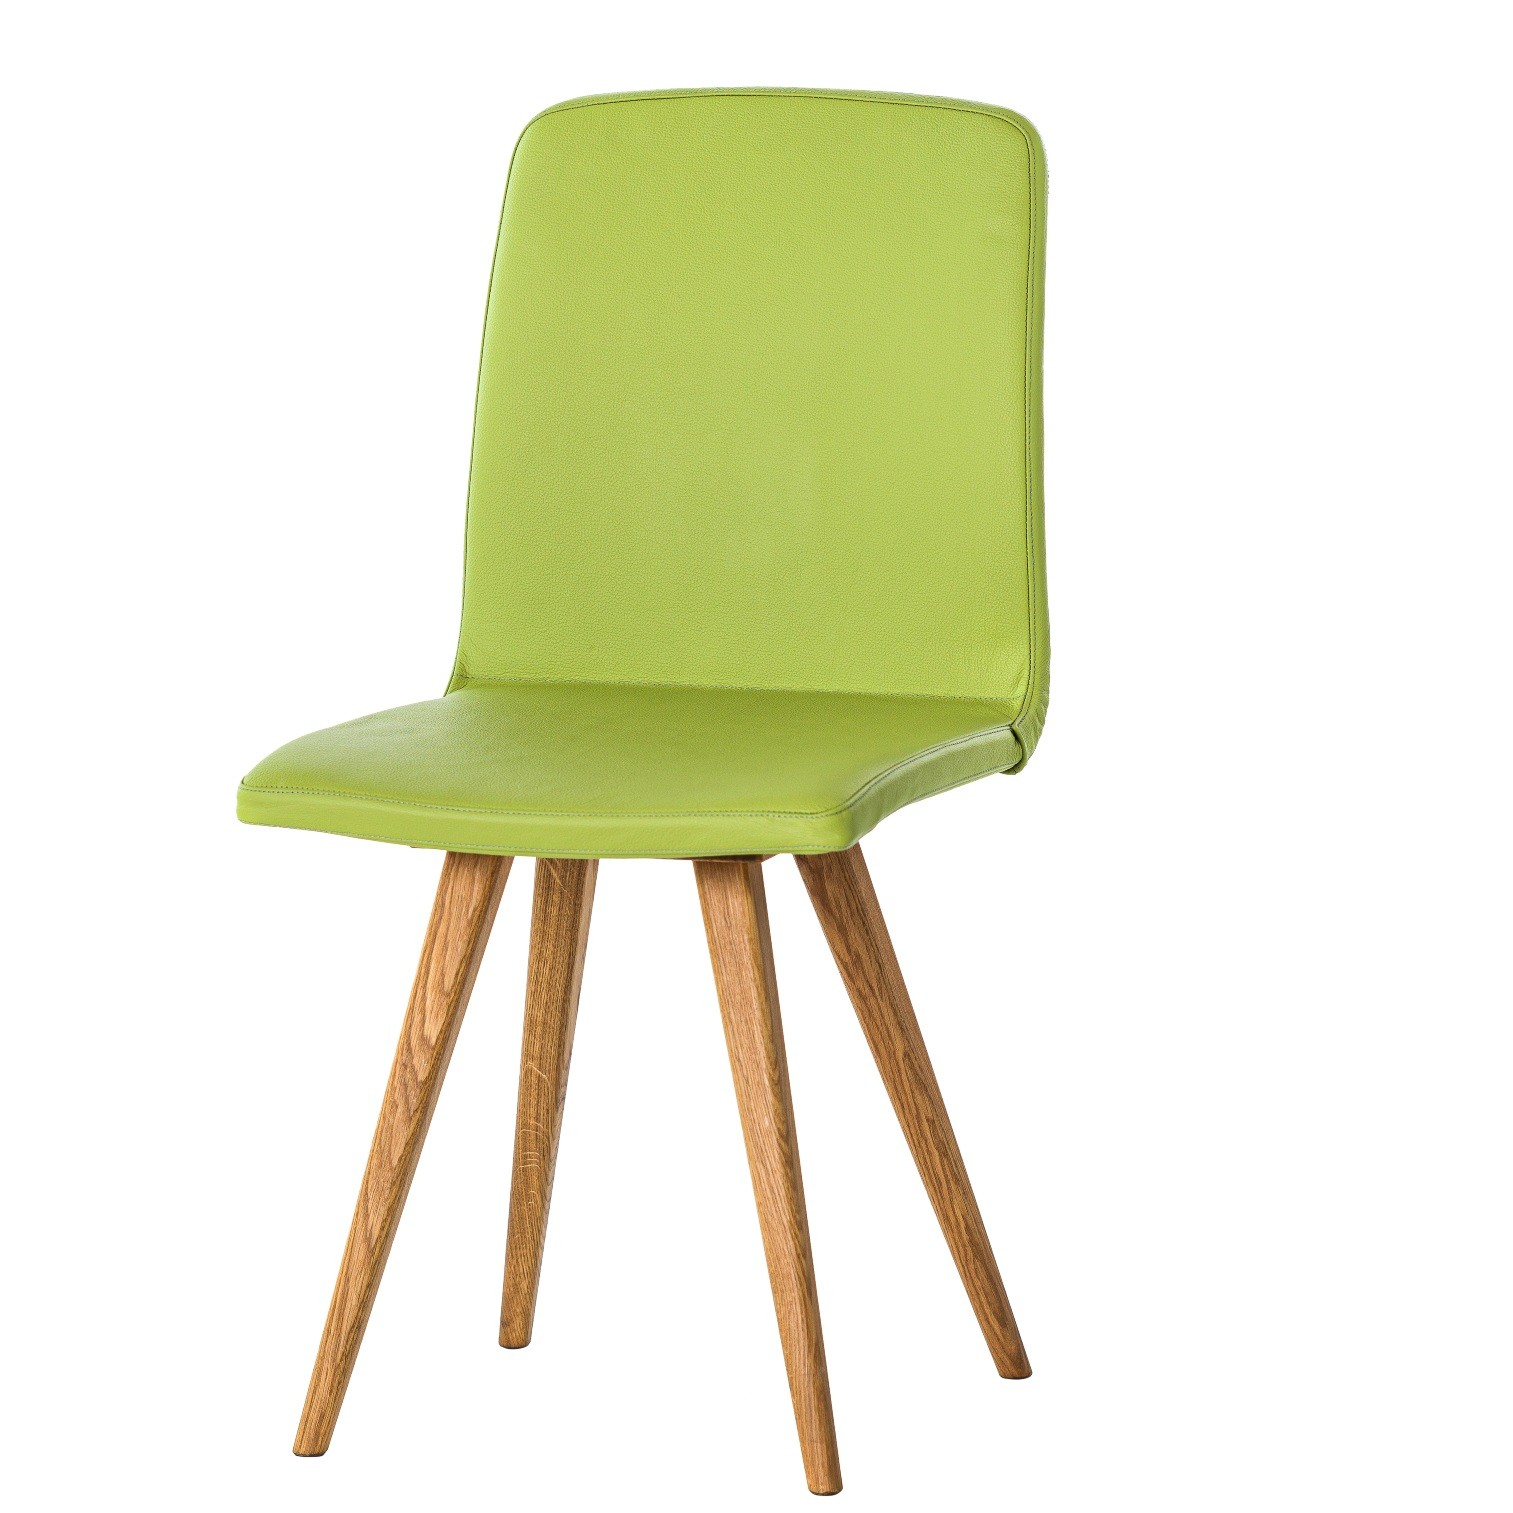 GATTA CHAIR wholly upholstered